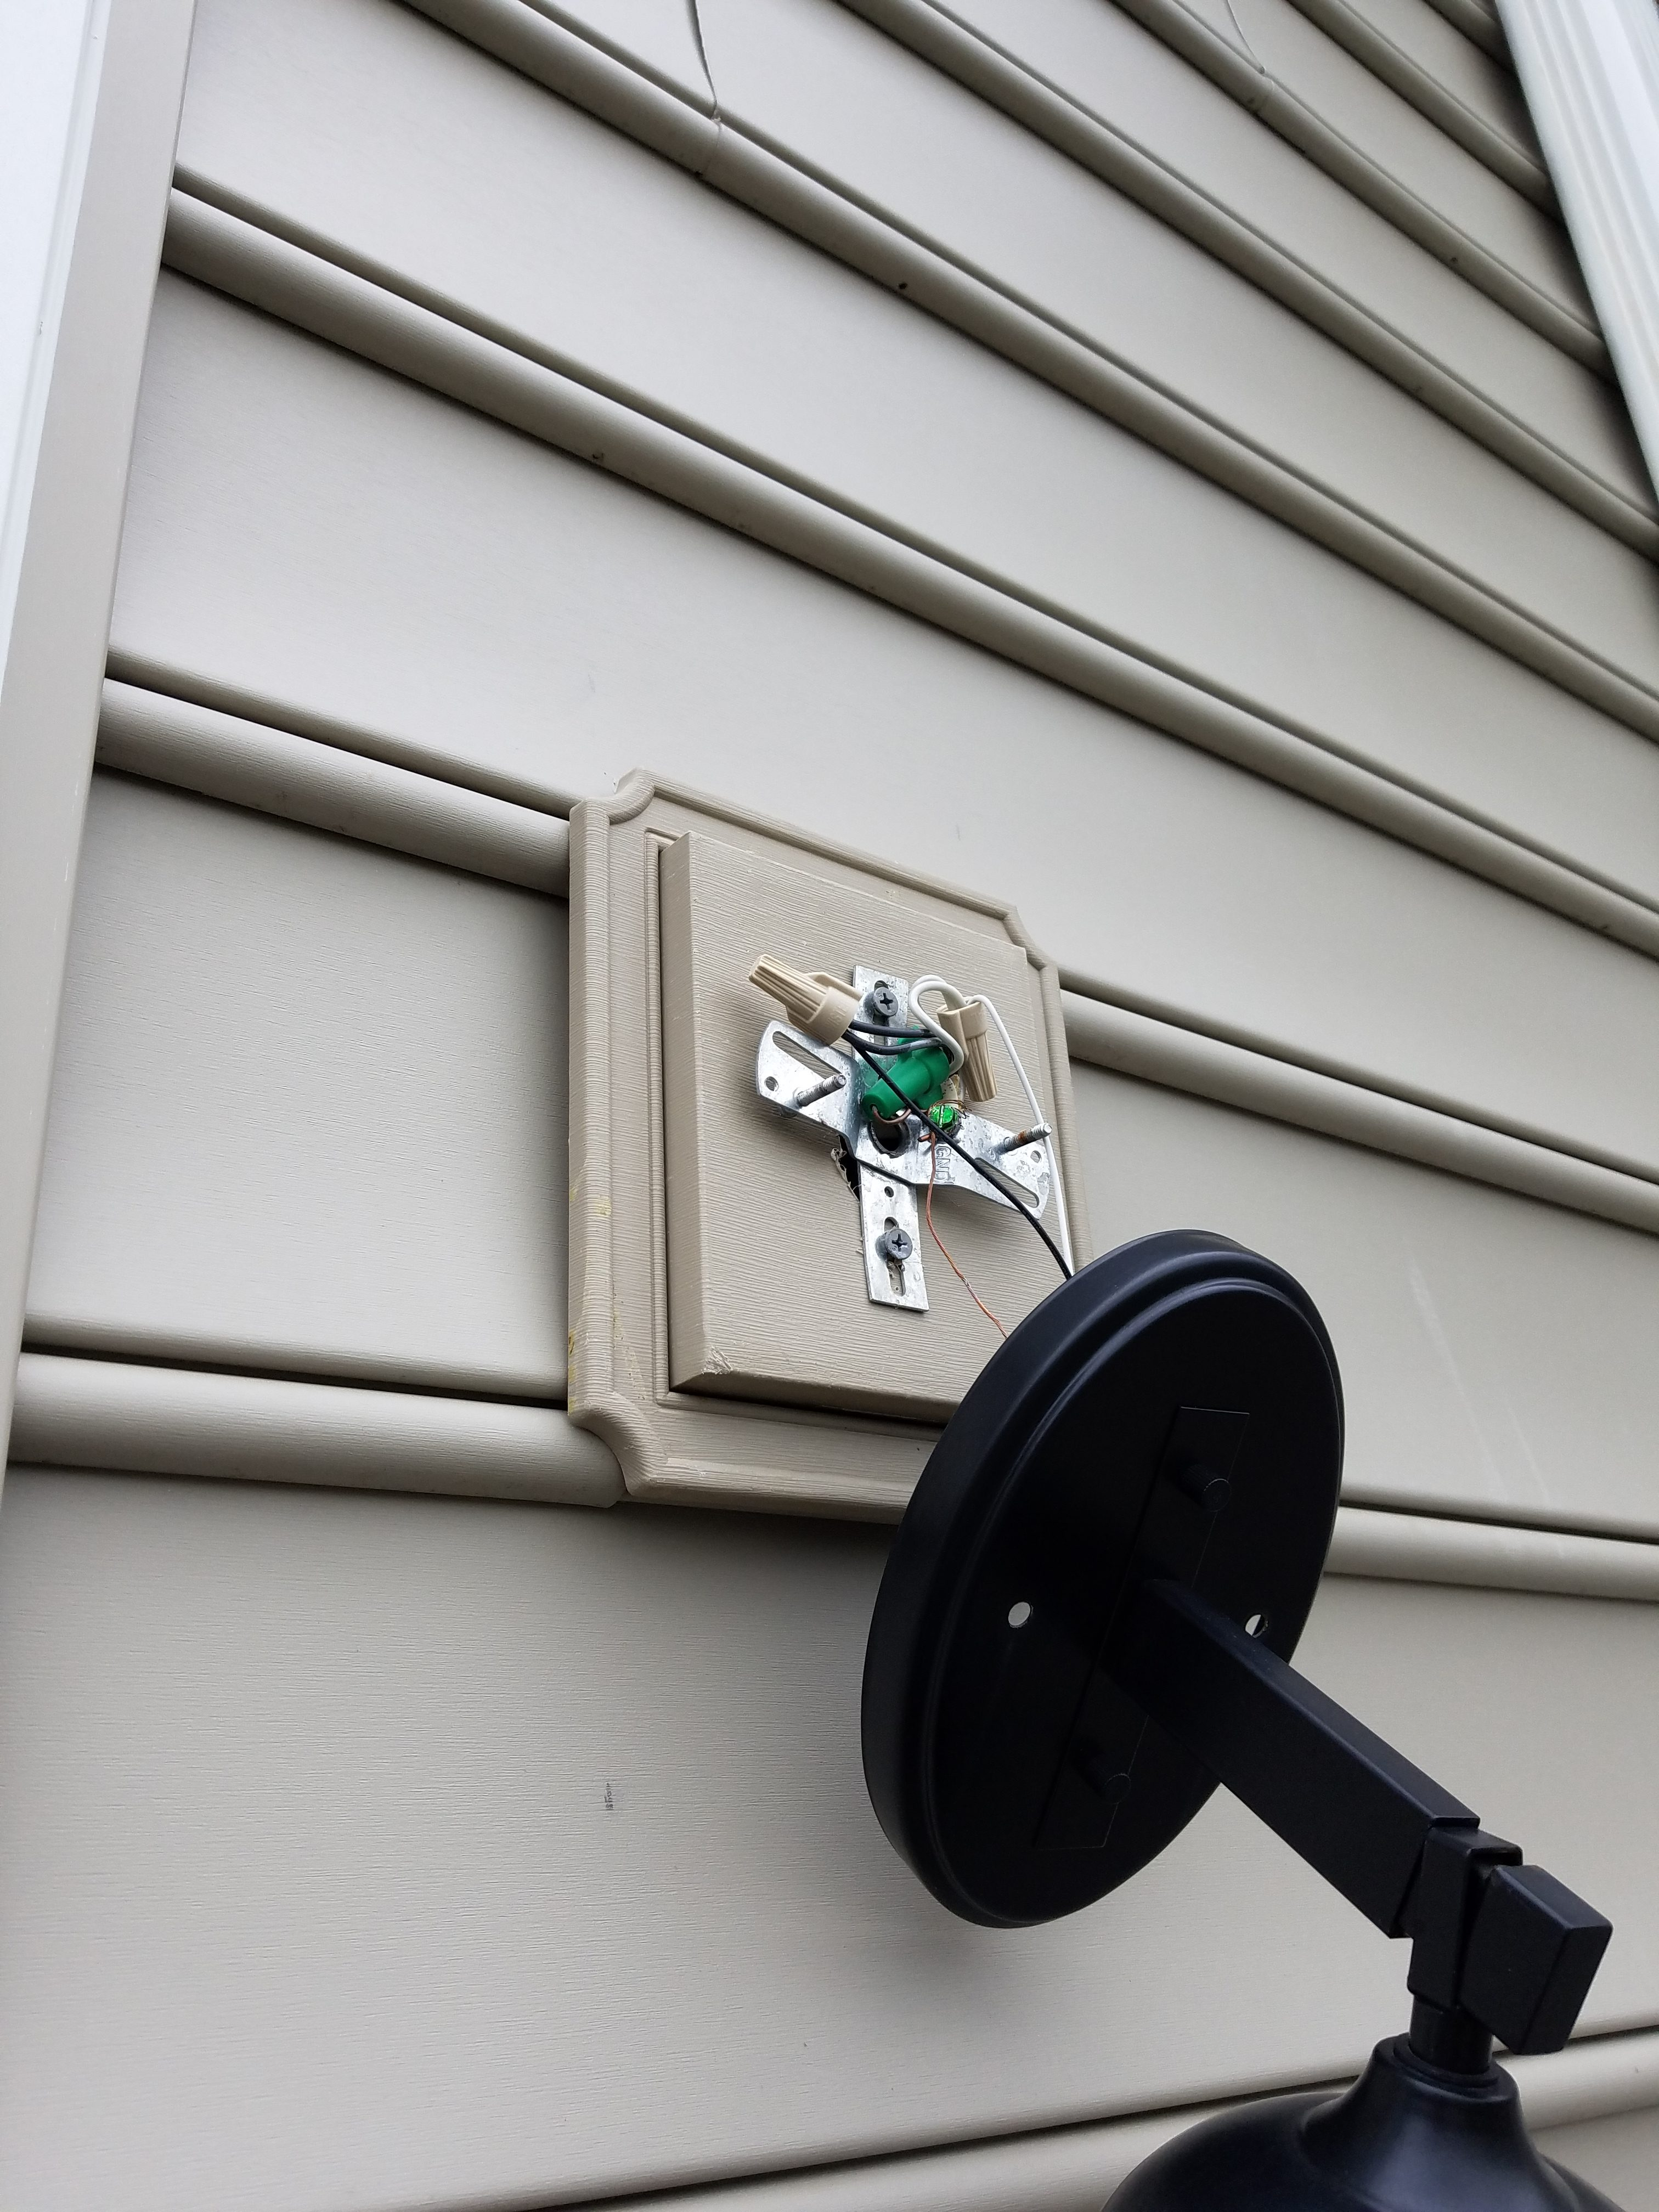 Electrician Philadelphia Electrical Contractors Wiring New House Cost If You Have Good Work Habits That Repeat During Installs It Becomes Second Nature Squaring Wires When Roughing In A